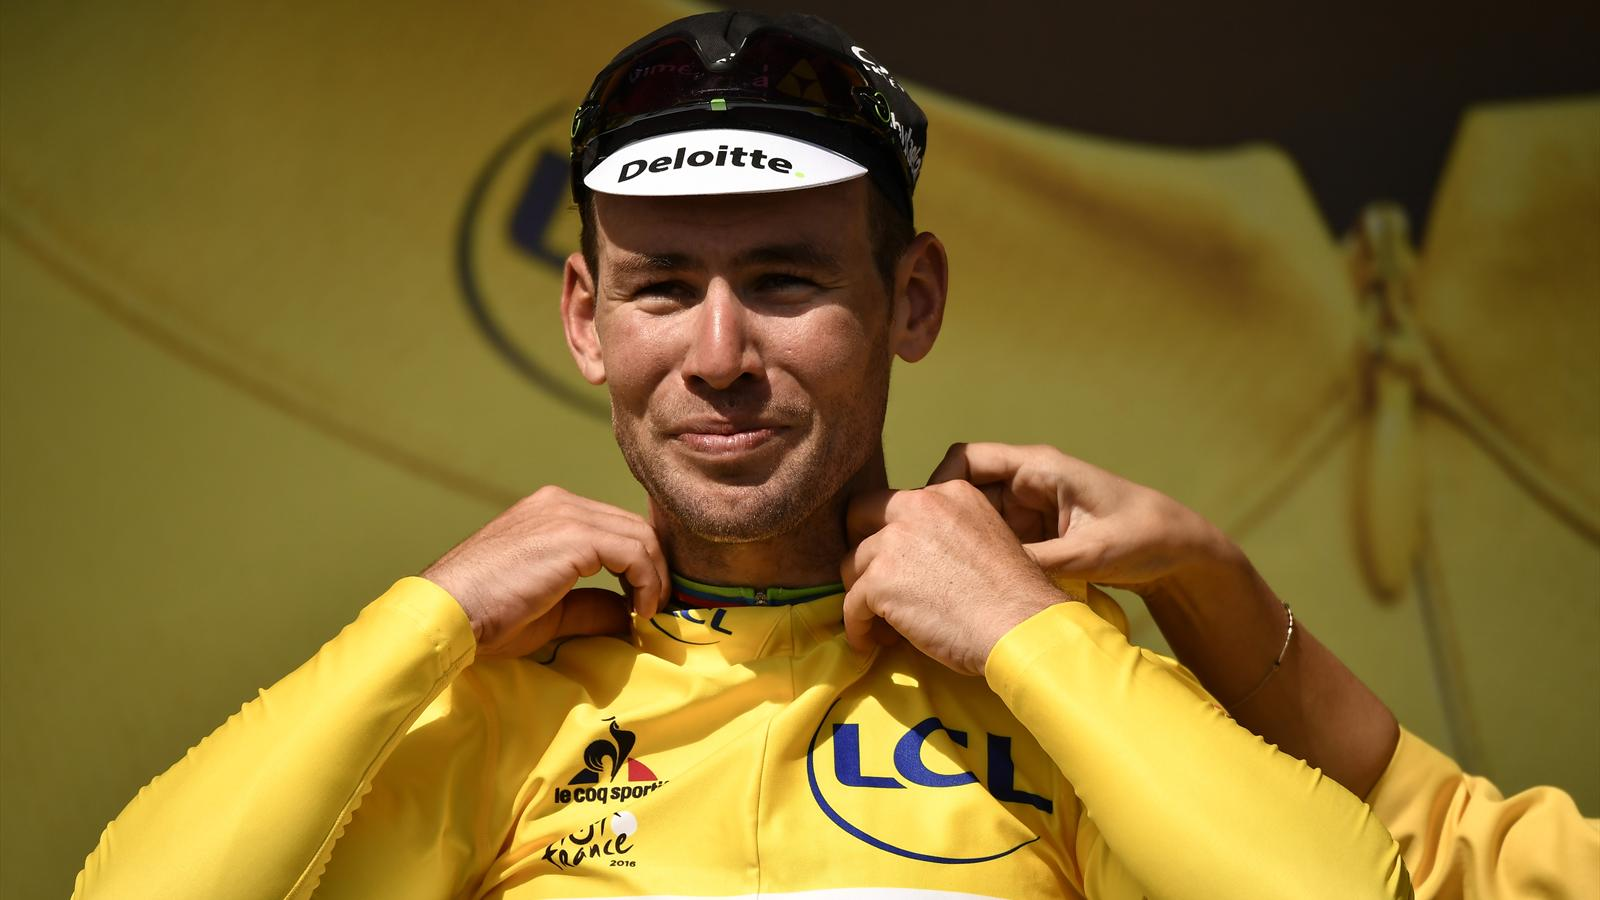 Mark Cavendish diagnosed with glandular fever